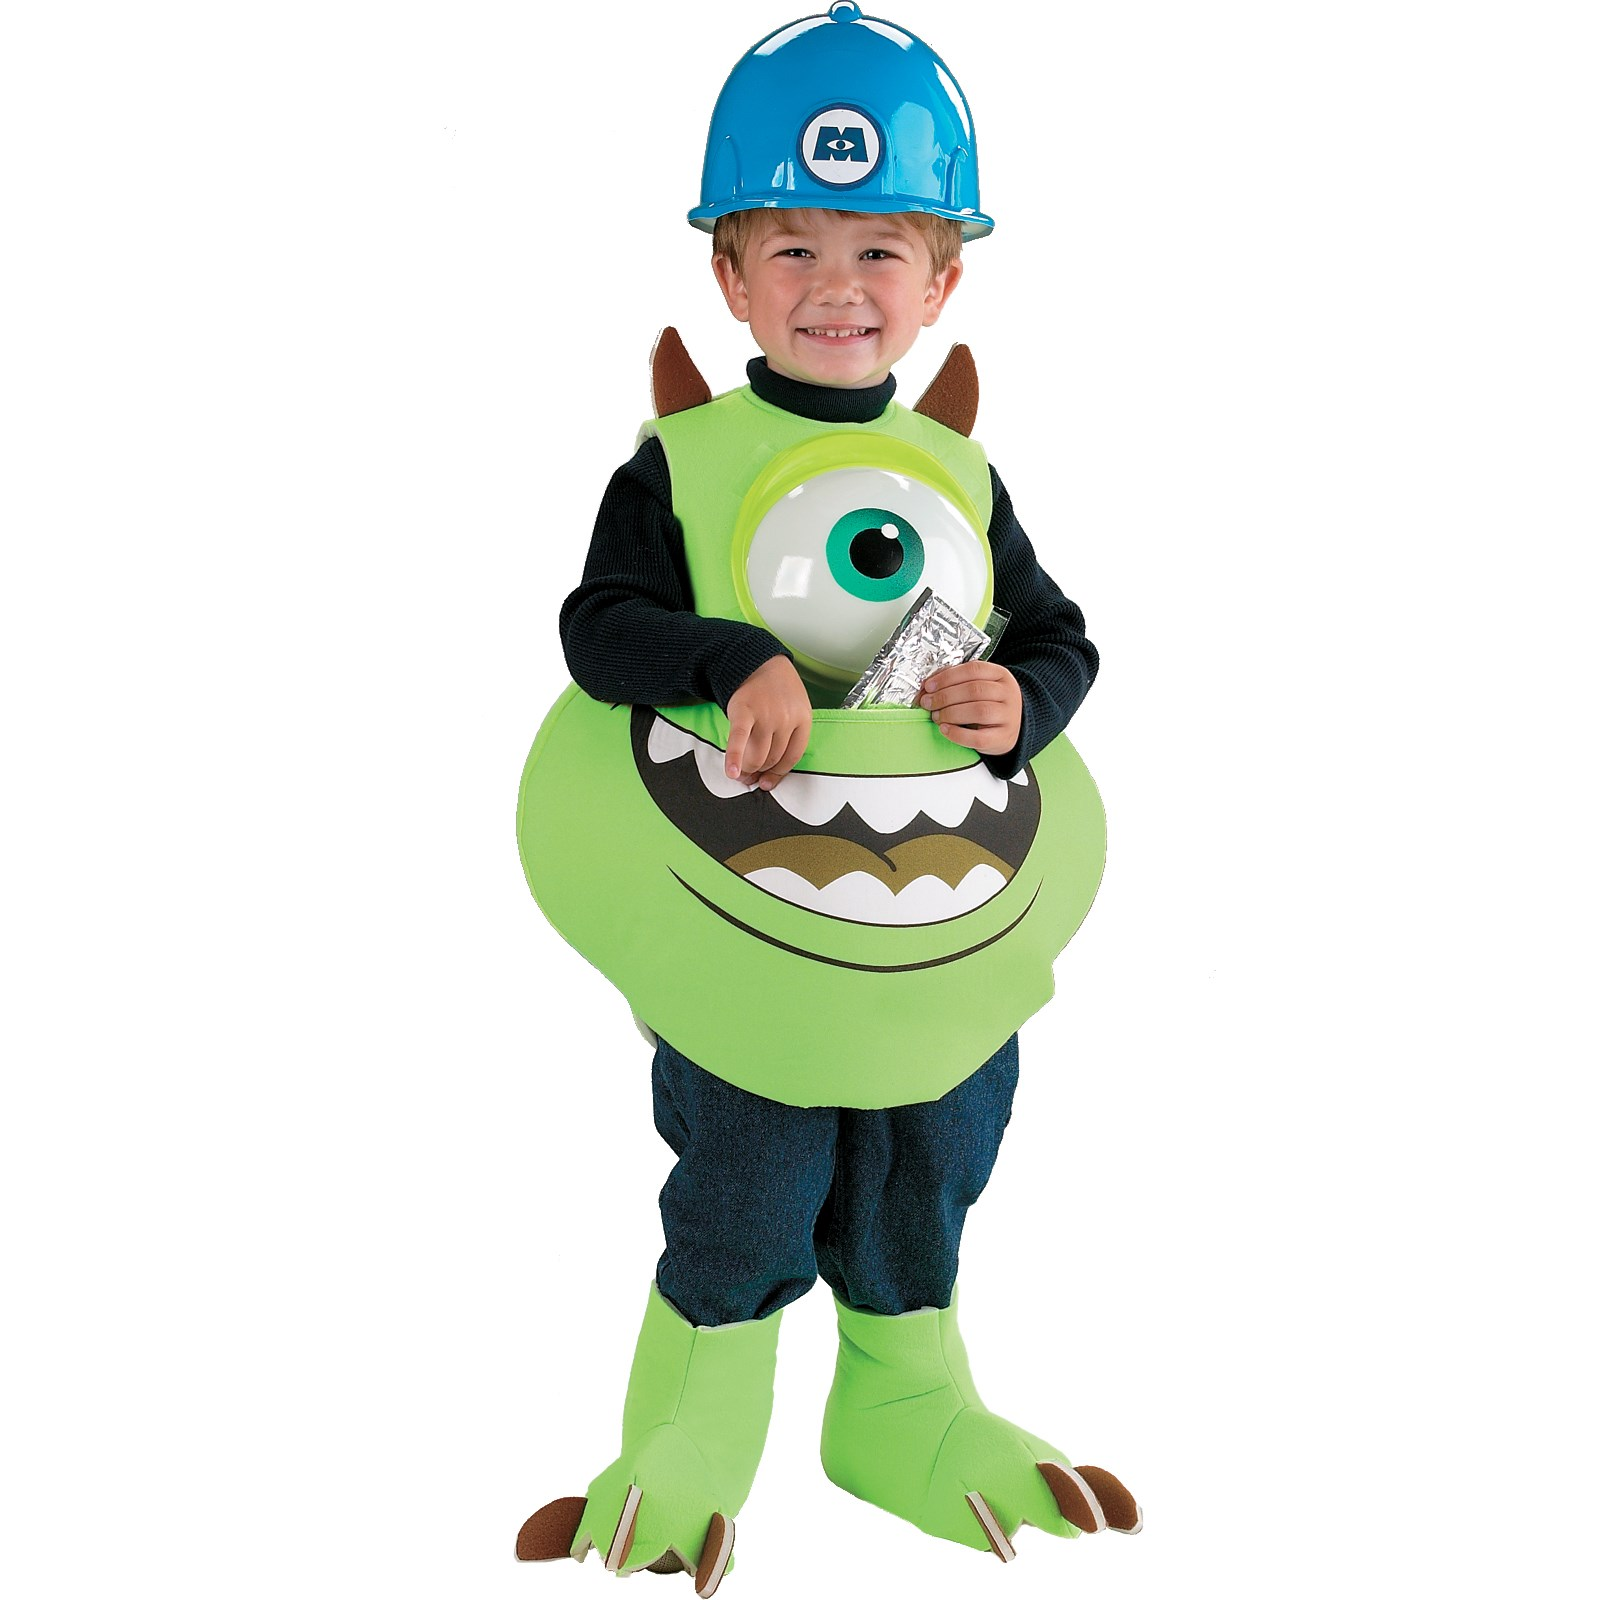 Monsters Inc. Disney Mike Candy Catcher Child Costume Small (Up to a Size 6)